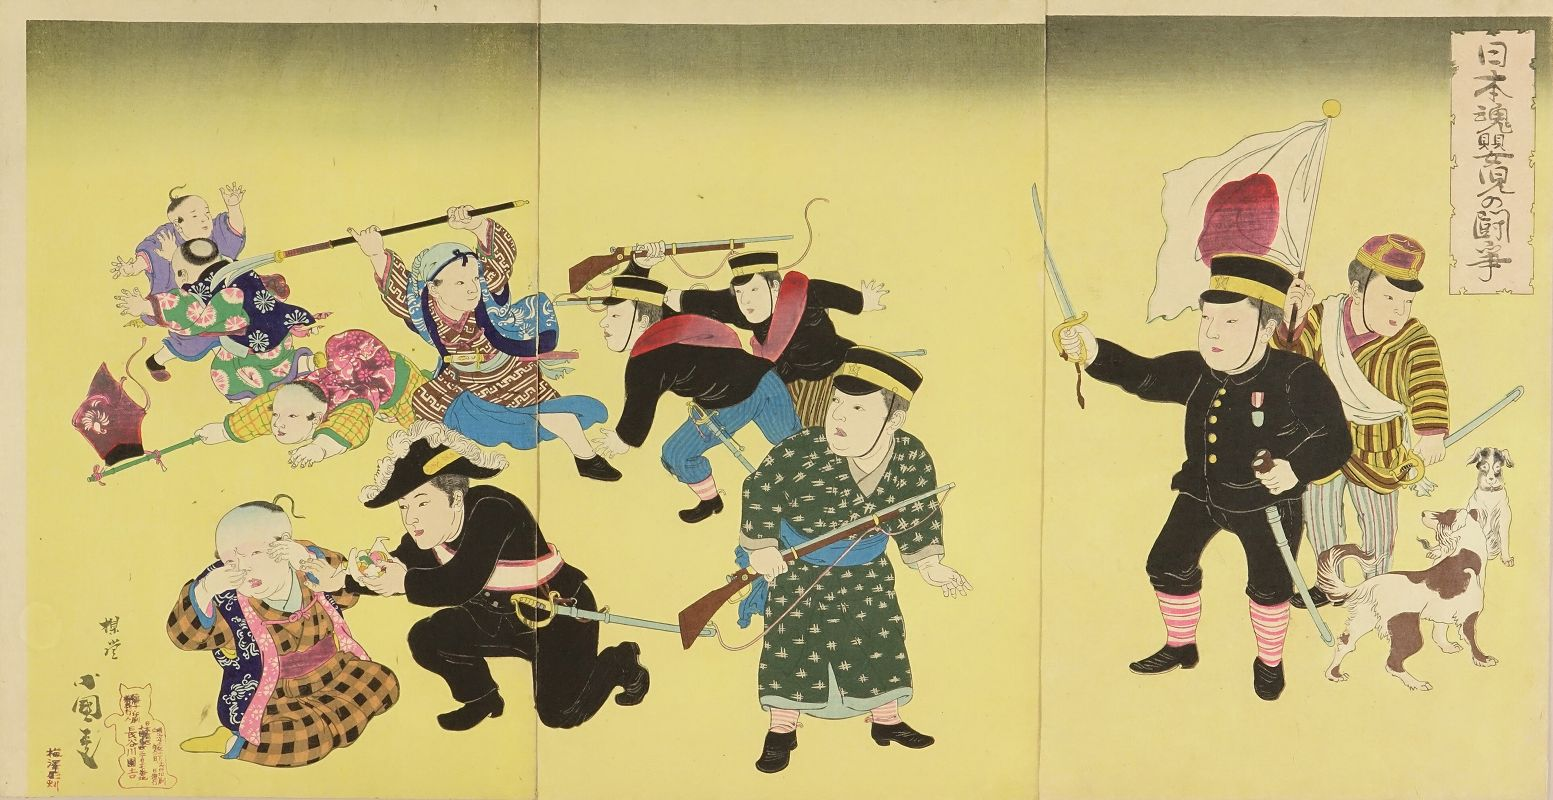 KOKUNIMASA <i>Nihon tamashii youji no toso</i> (Japanese spirit in the battle of children), triptych